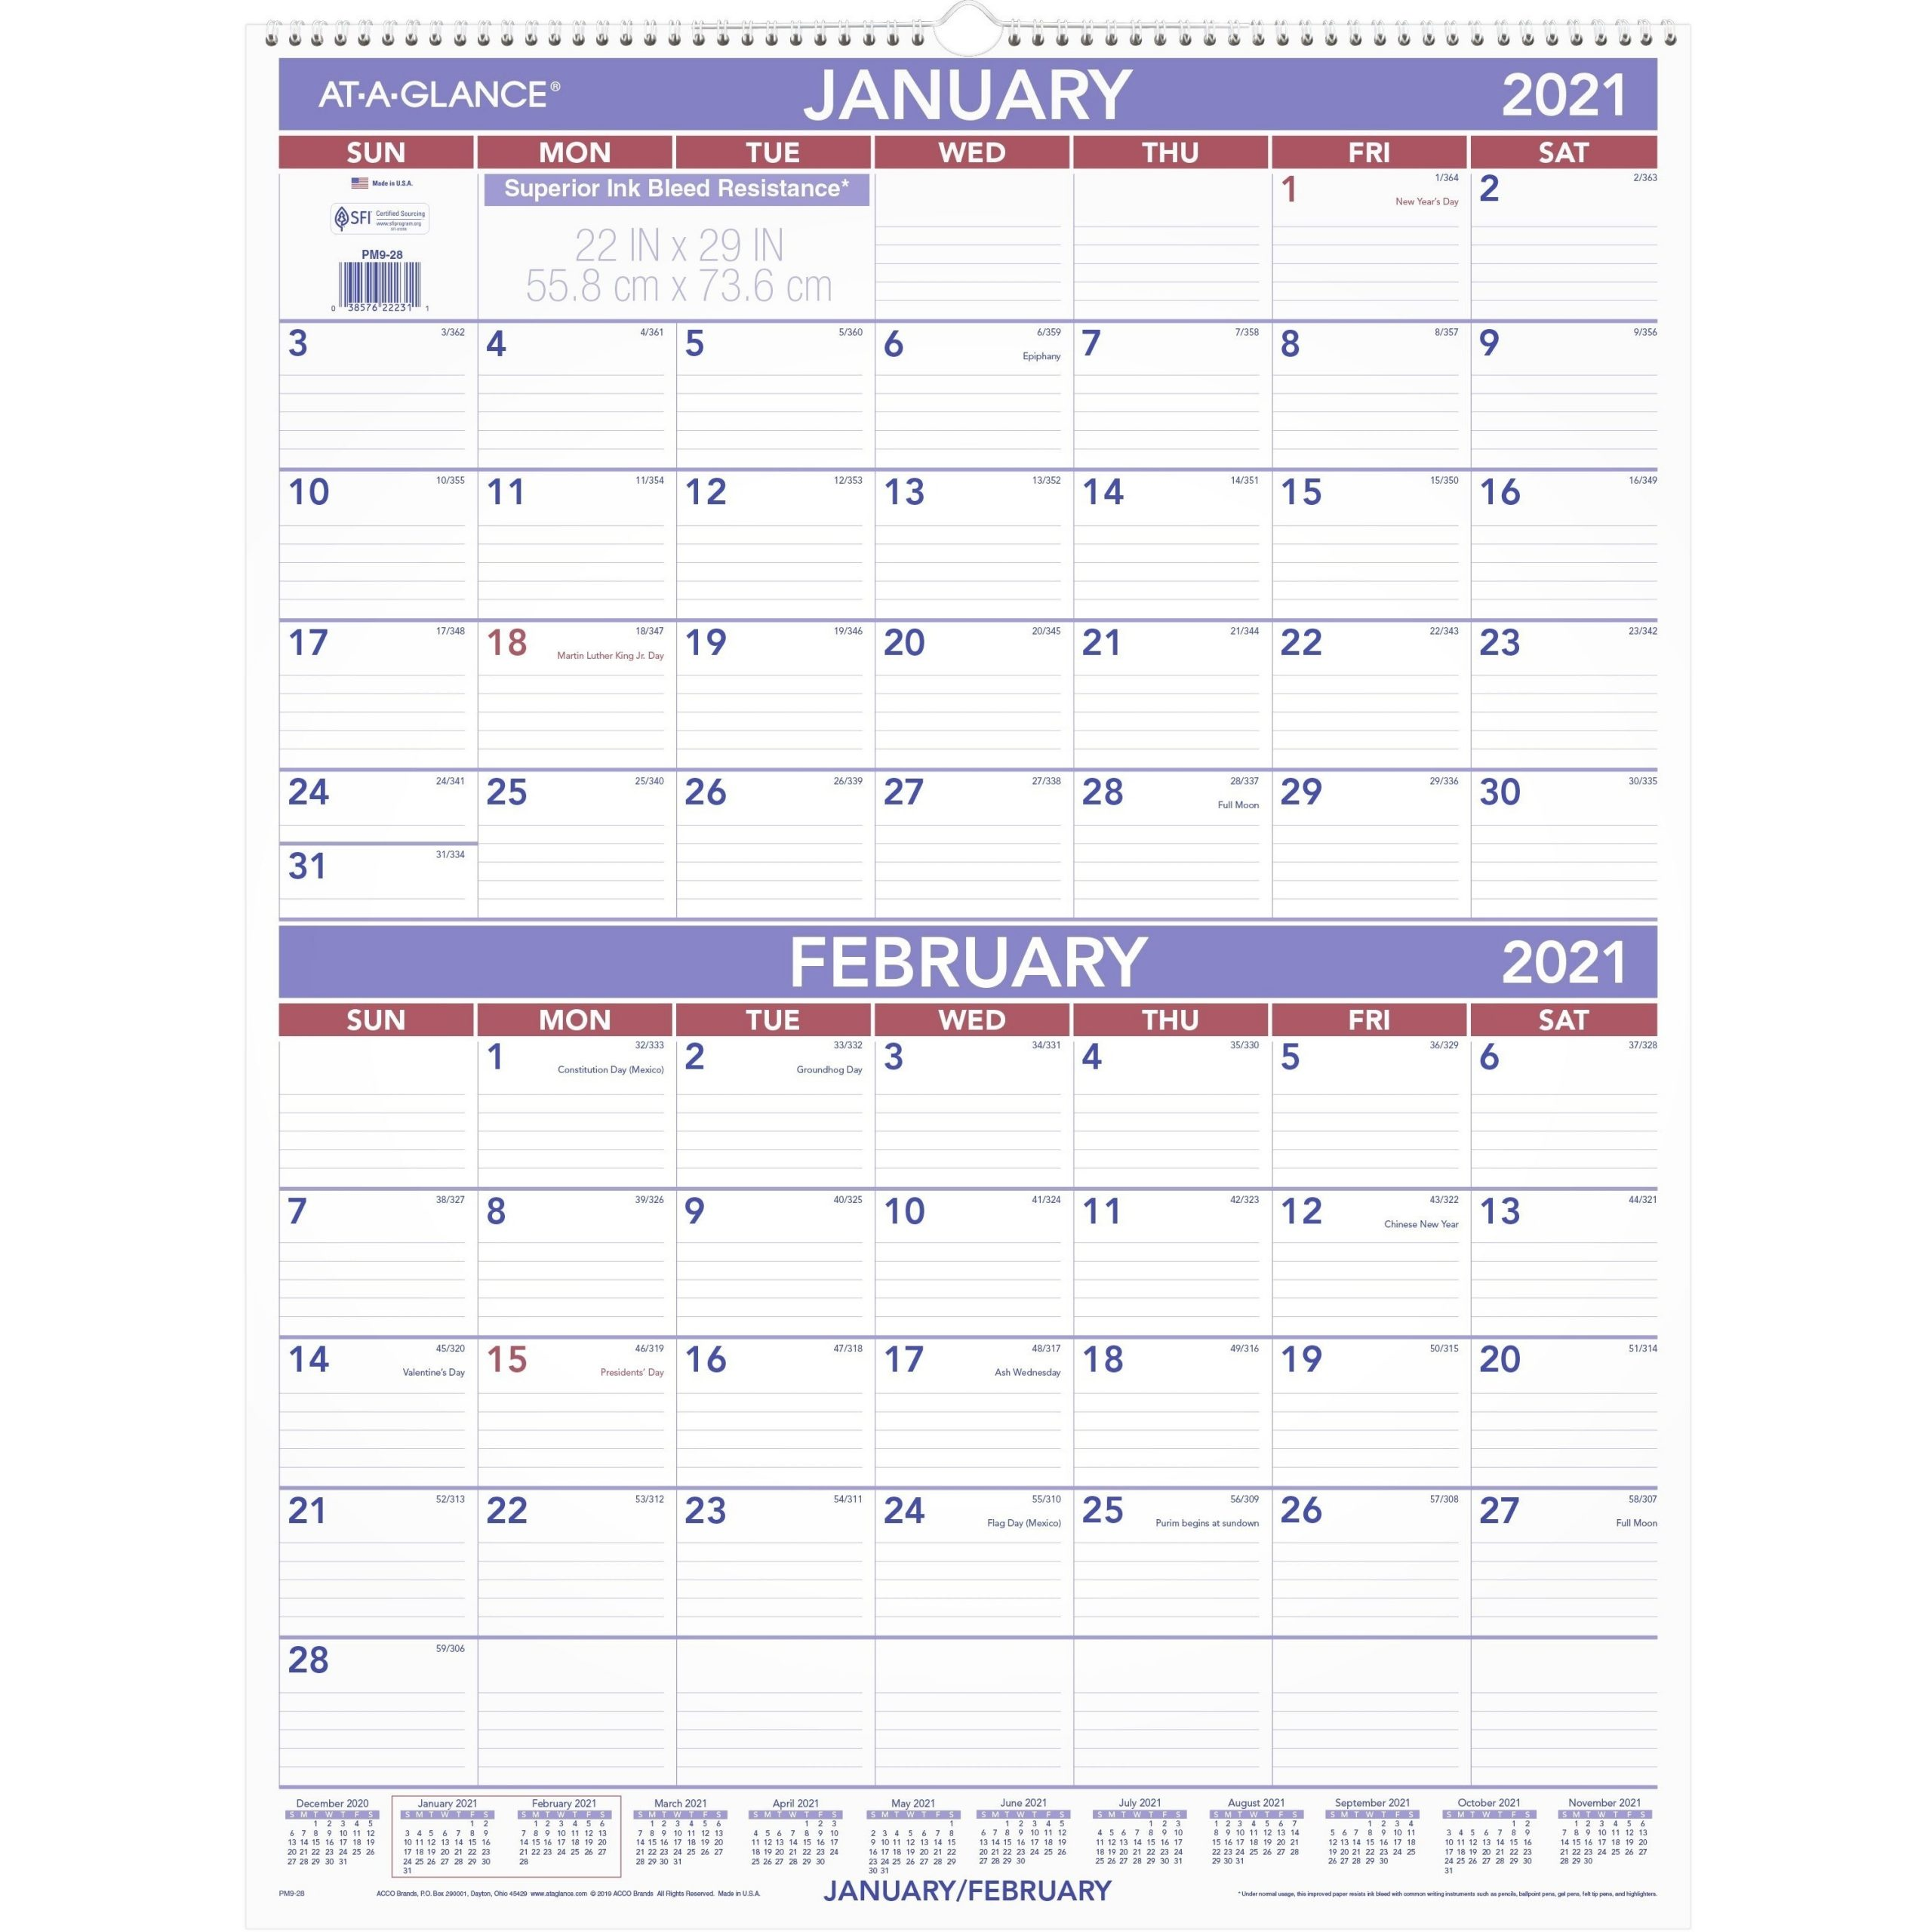 """At-A-Glance 2-Month Wall Calendar - Monthly - 1 Year - January 2021 Till  December 2021 - 2 Month Single Page Layout - 29"""" X 22"""" Sheet Size - 3""""  (76.20"""